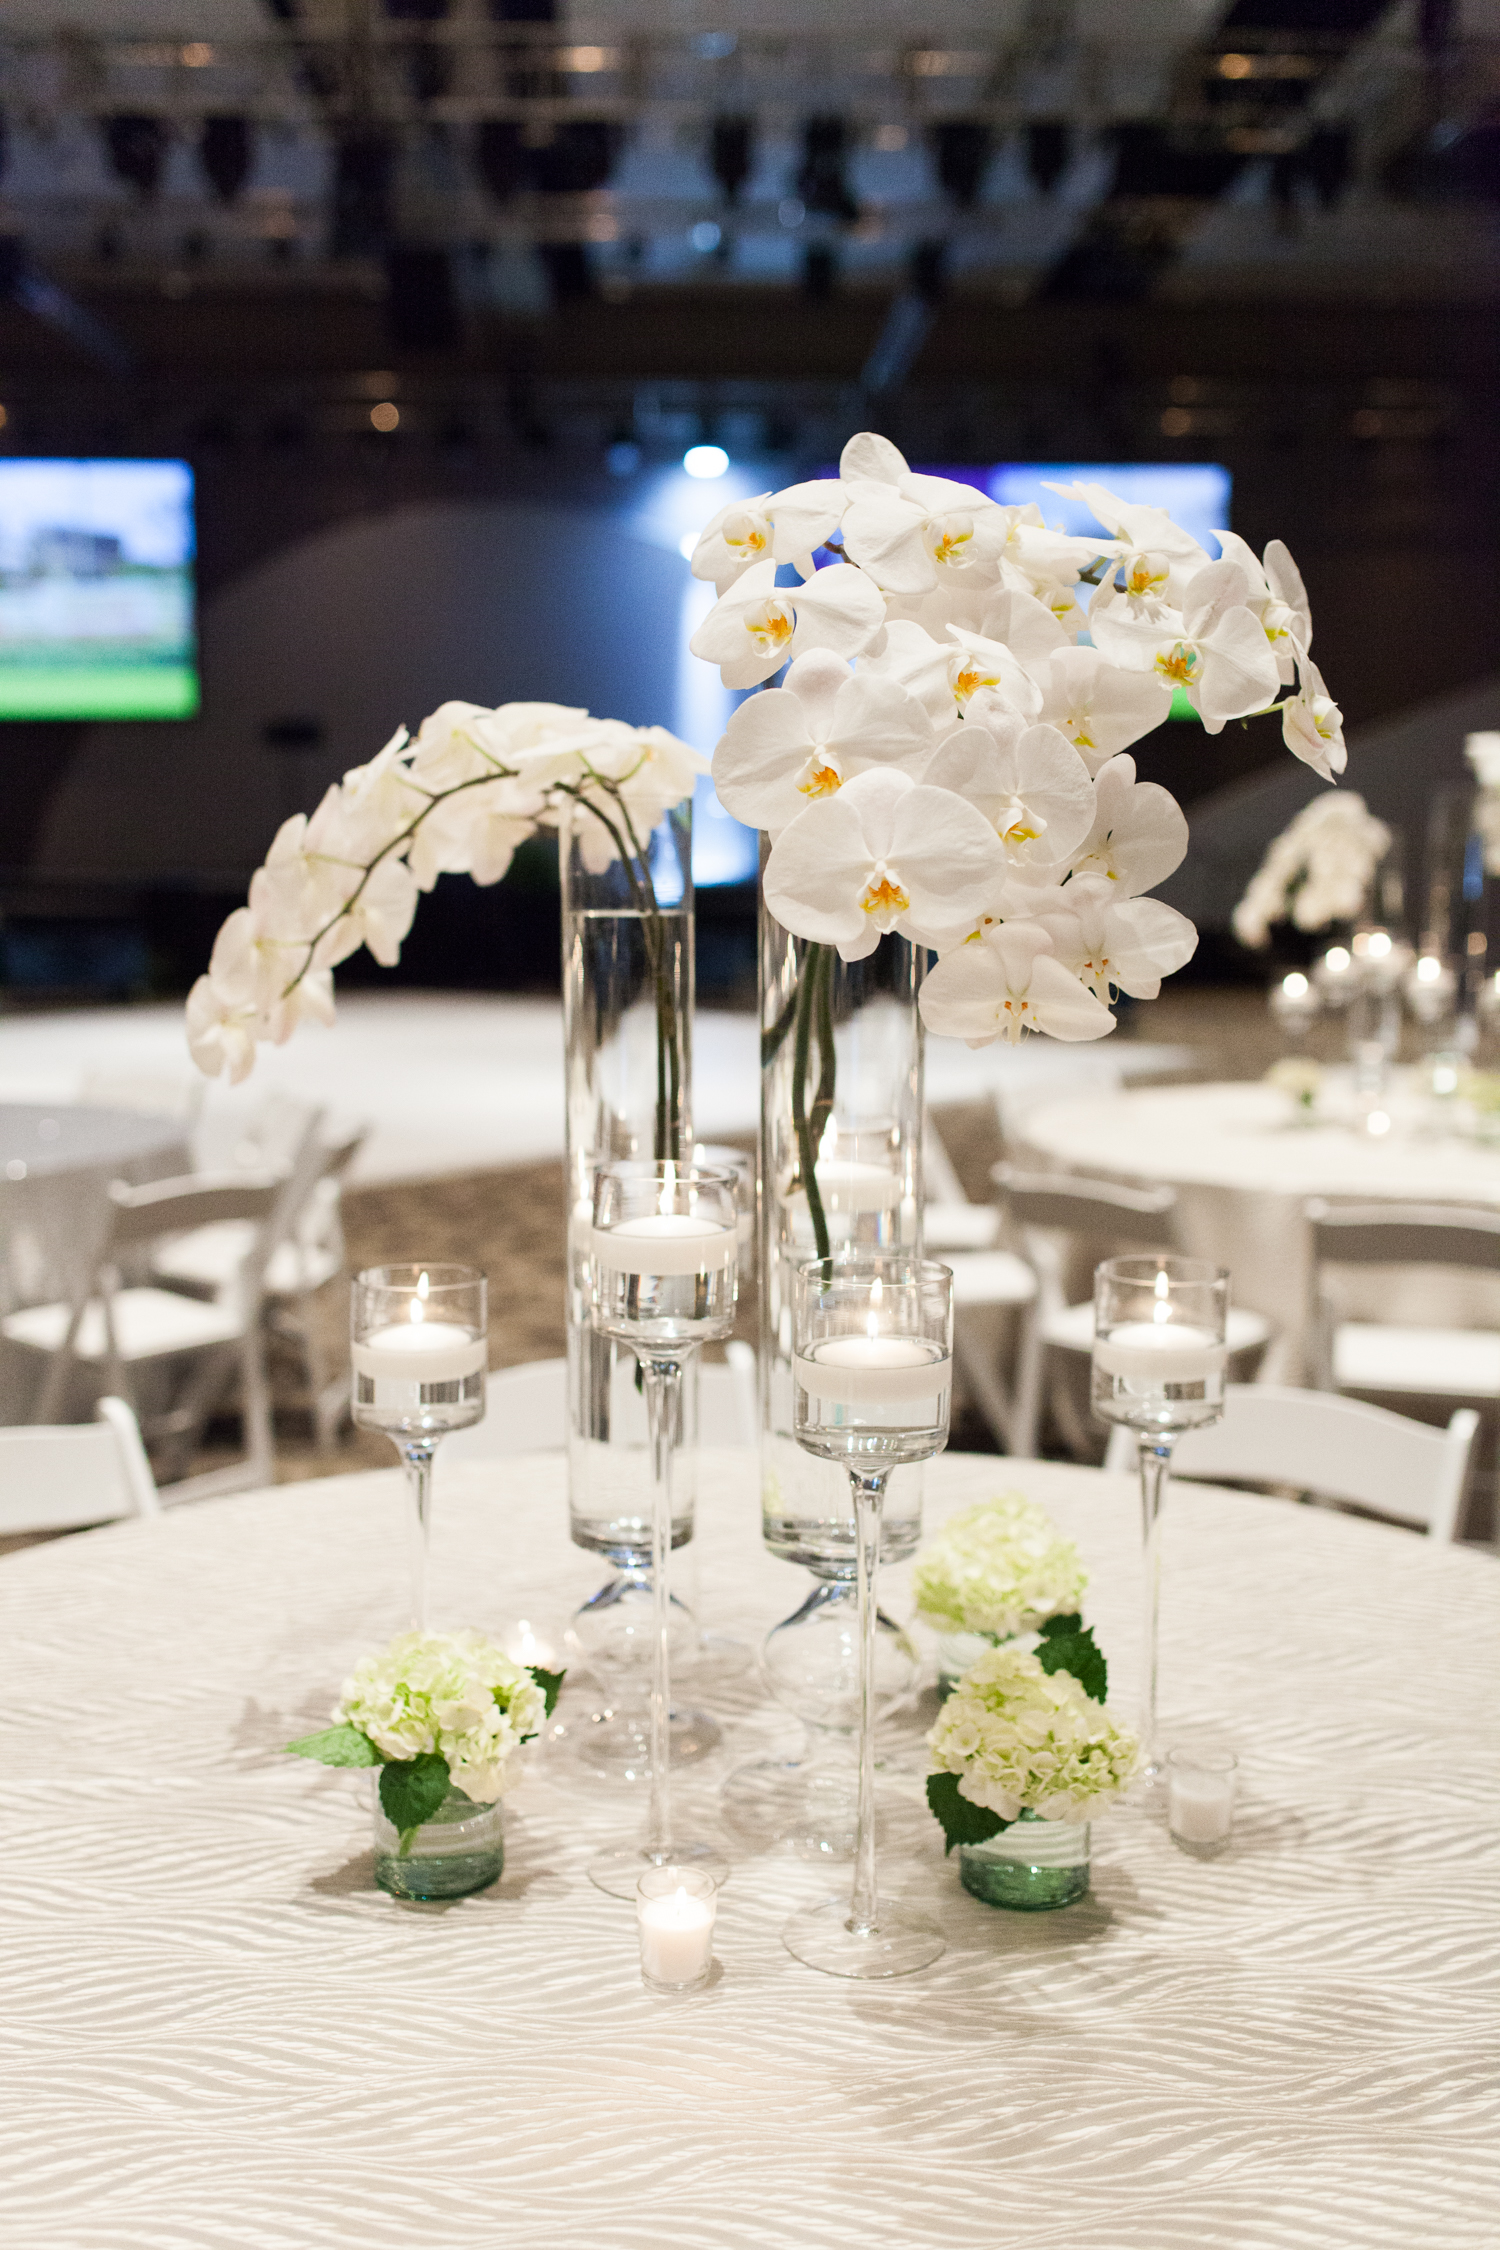 Grand Rapids, Michigan Event Orchid Centerpiece